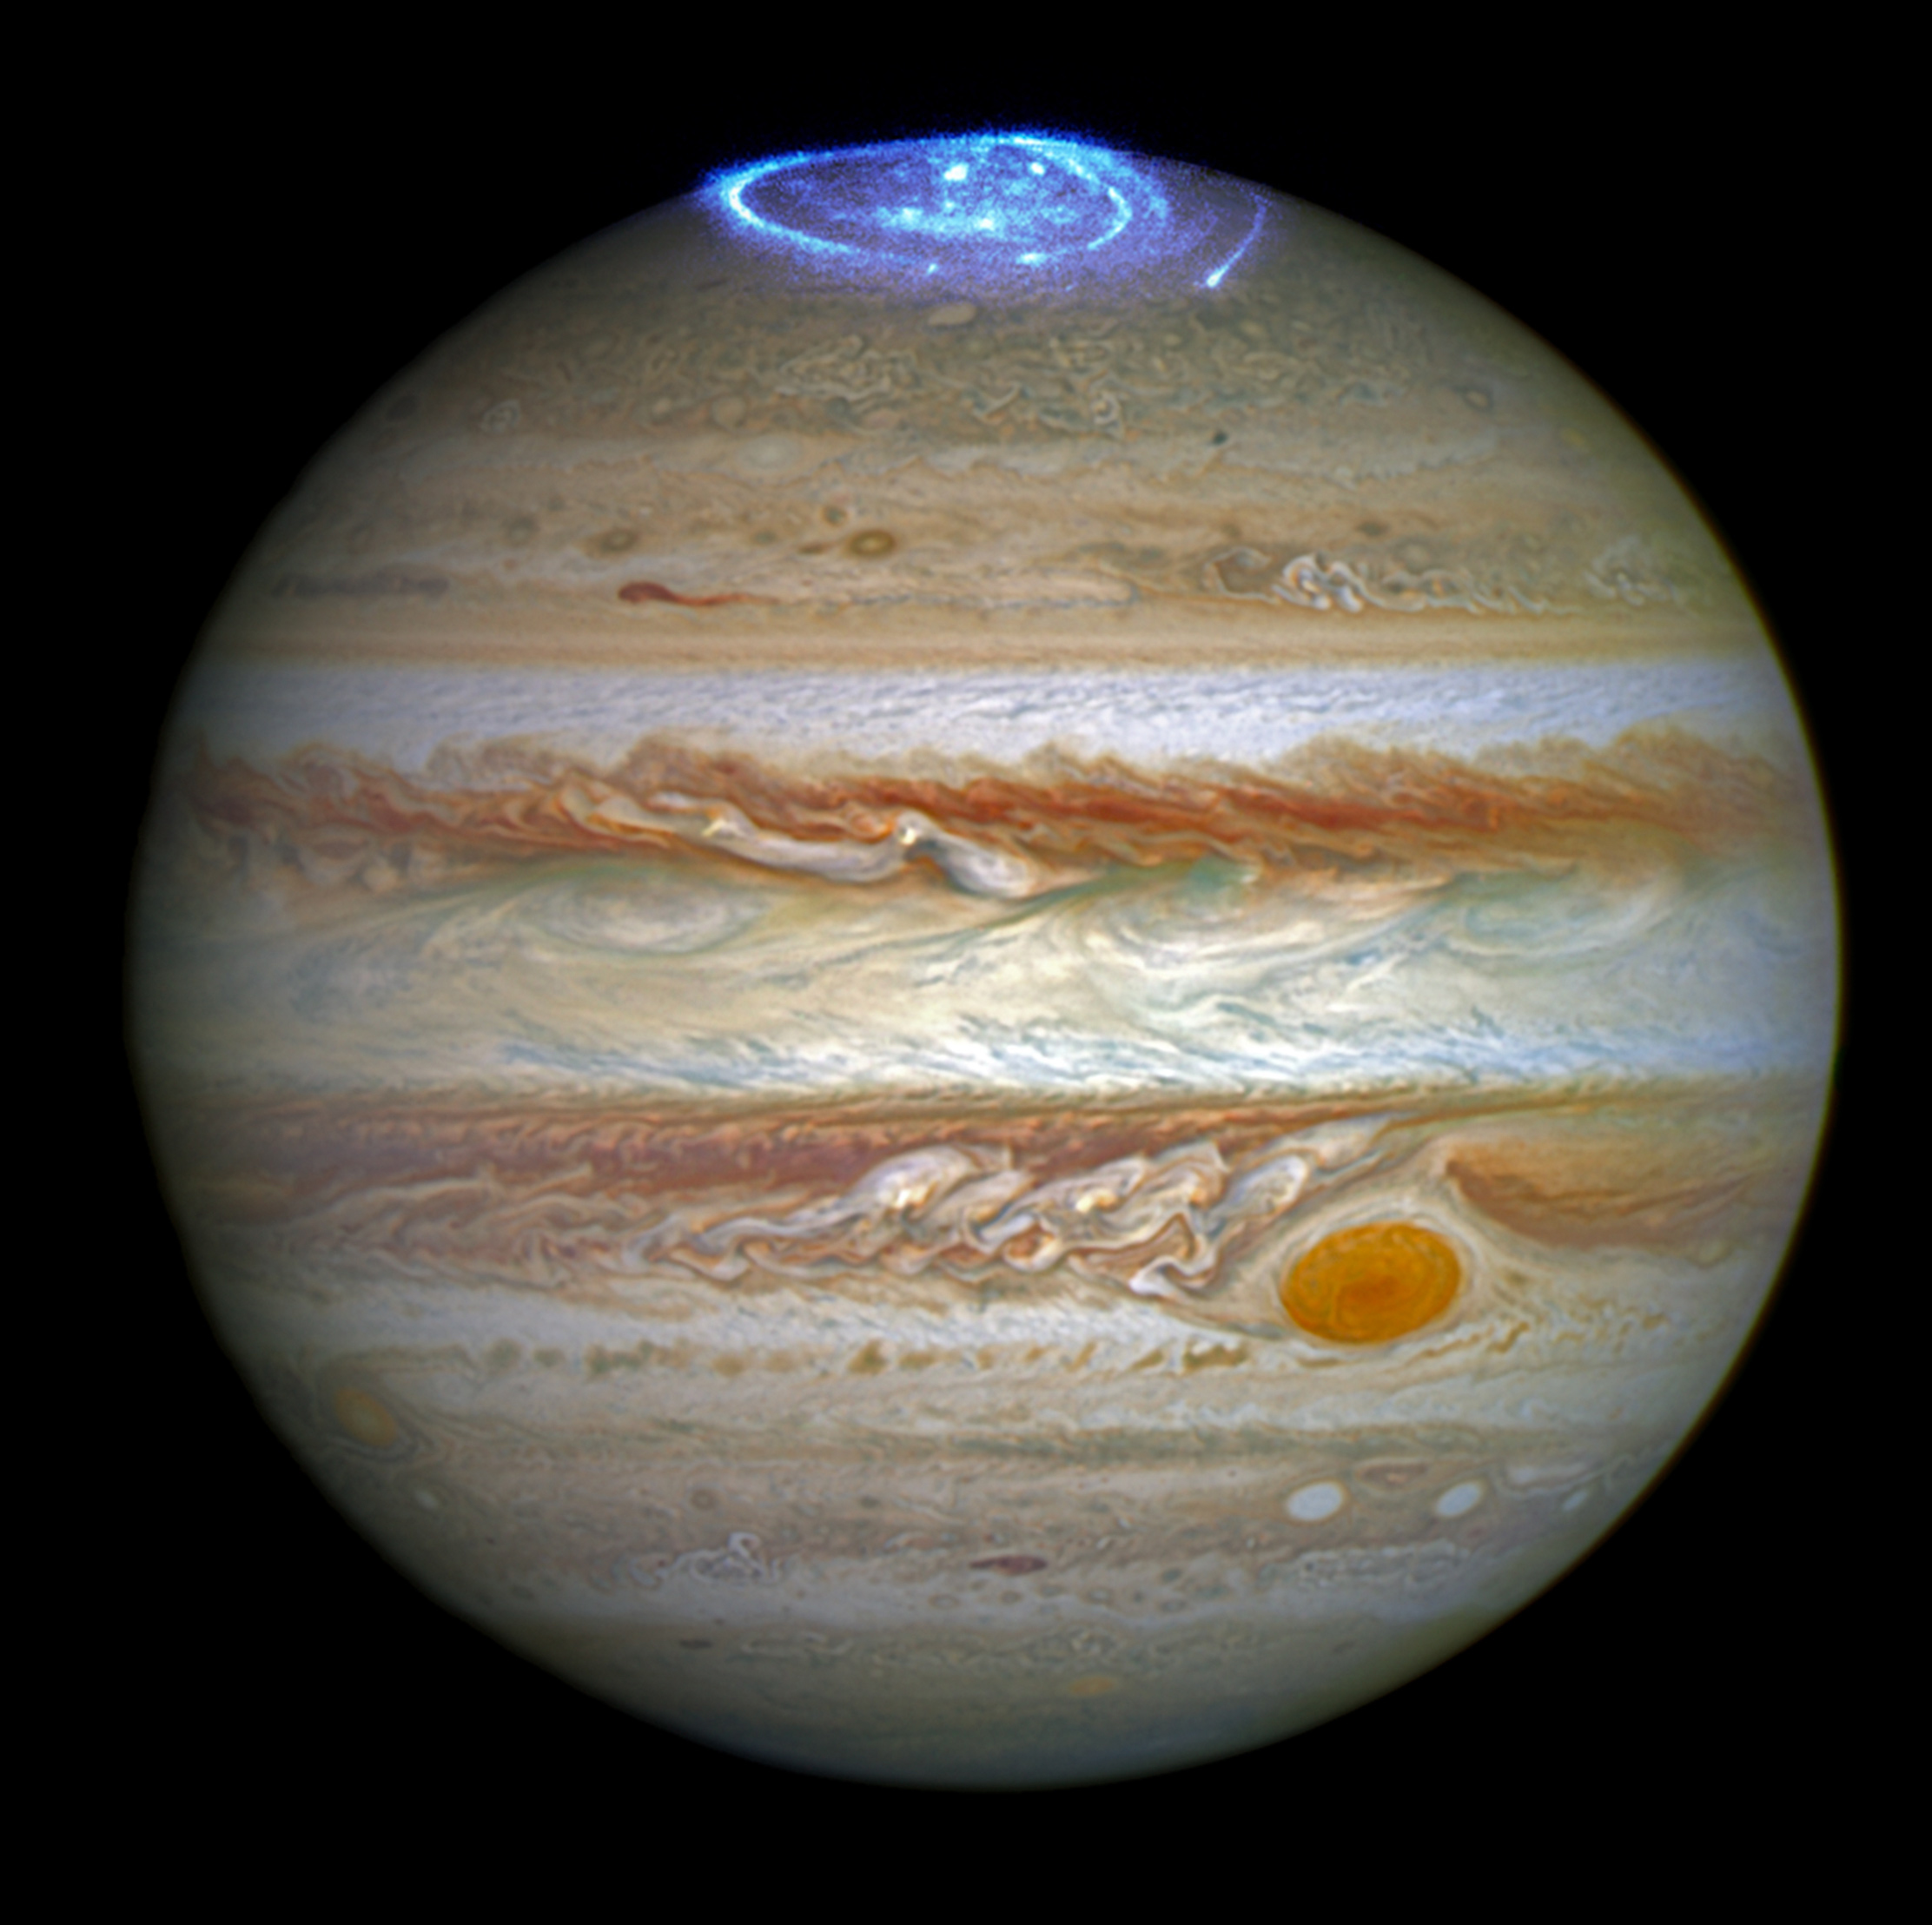 telescope images of Jupiter show ultraviolet auroras in blue over the planet's north pole